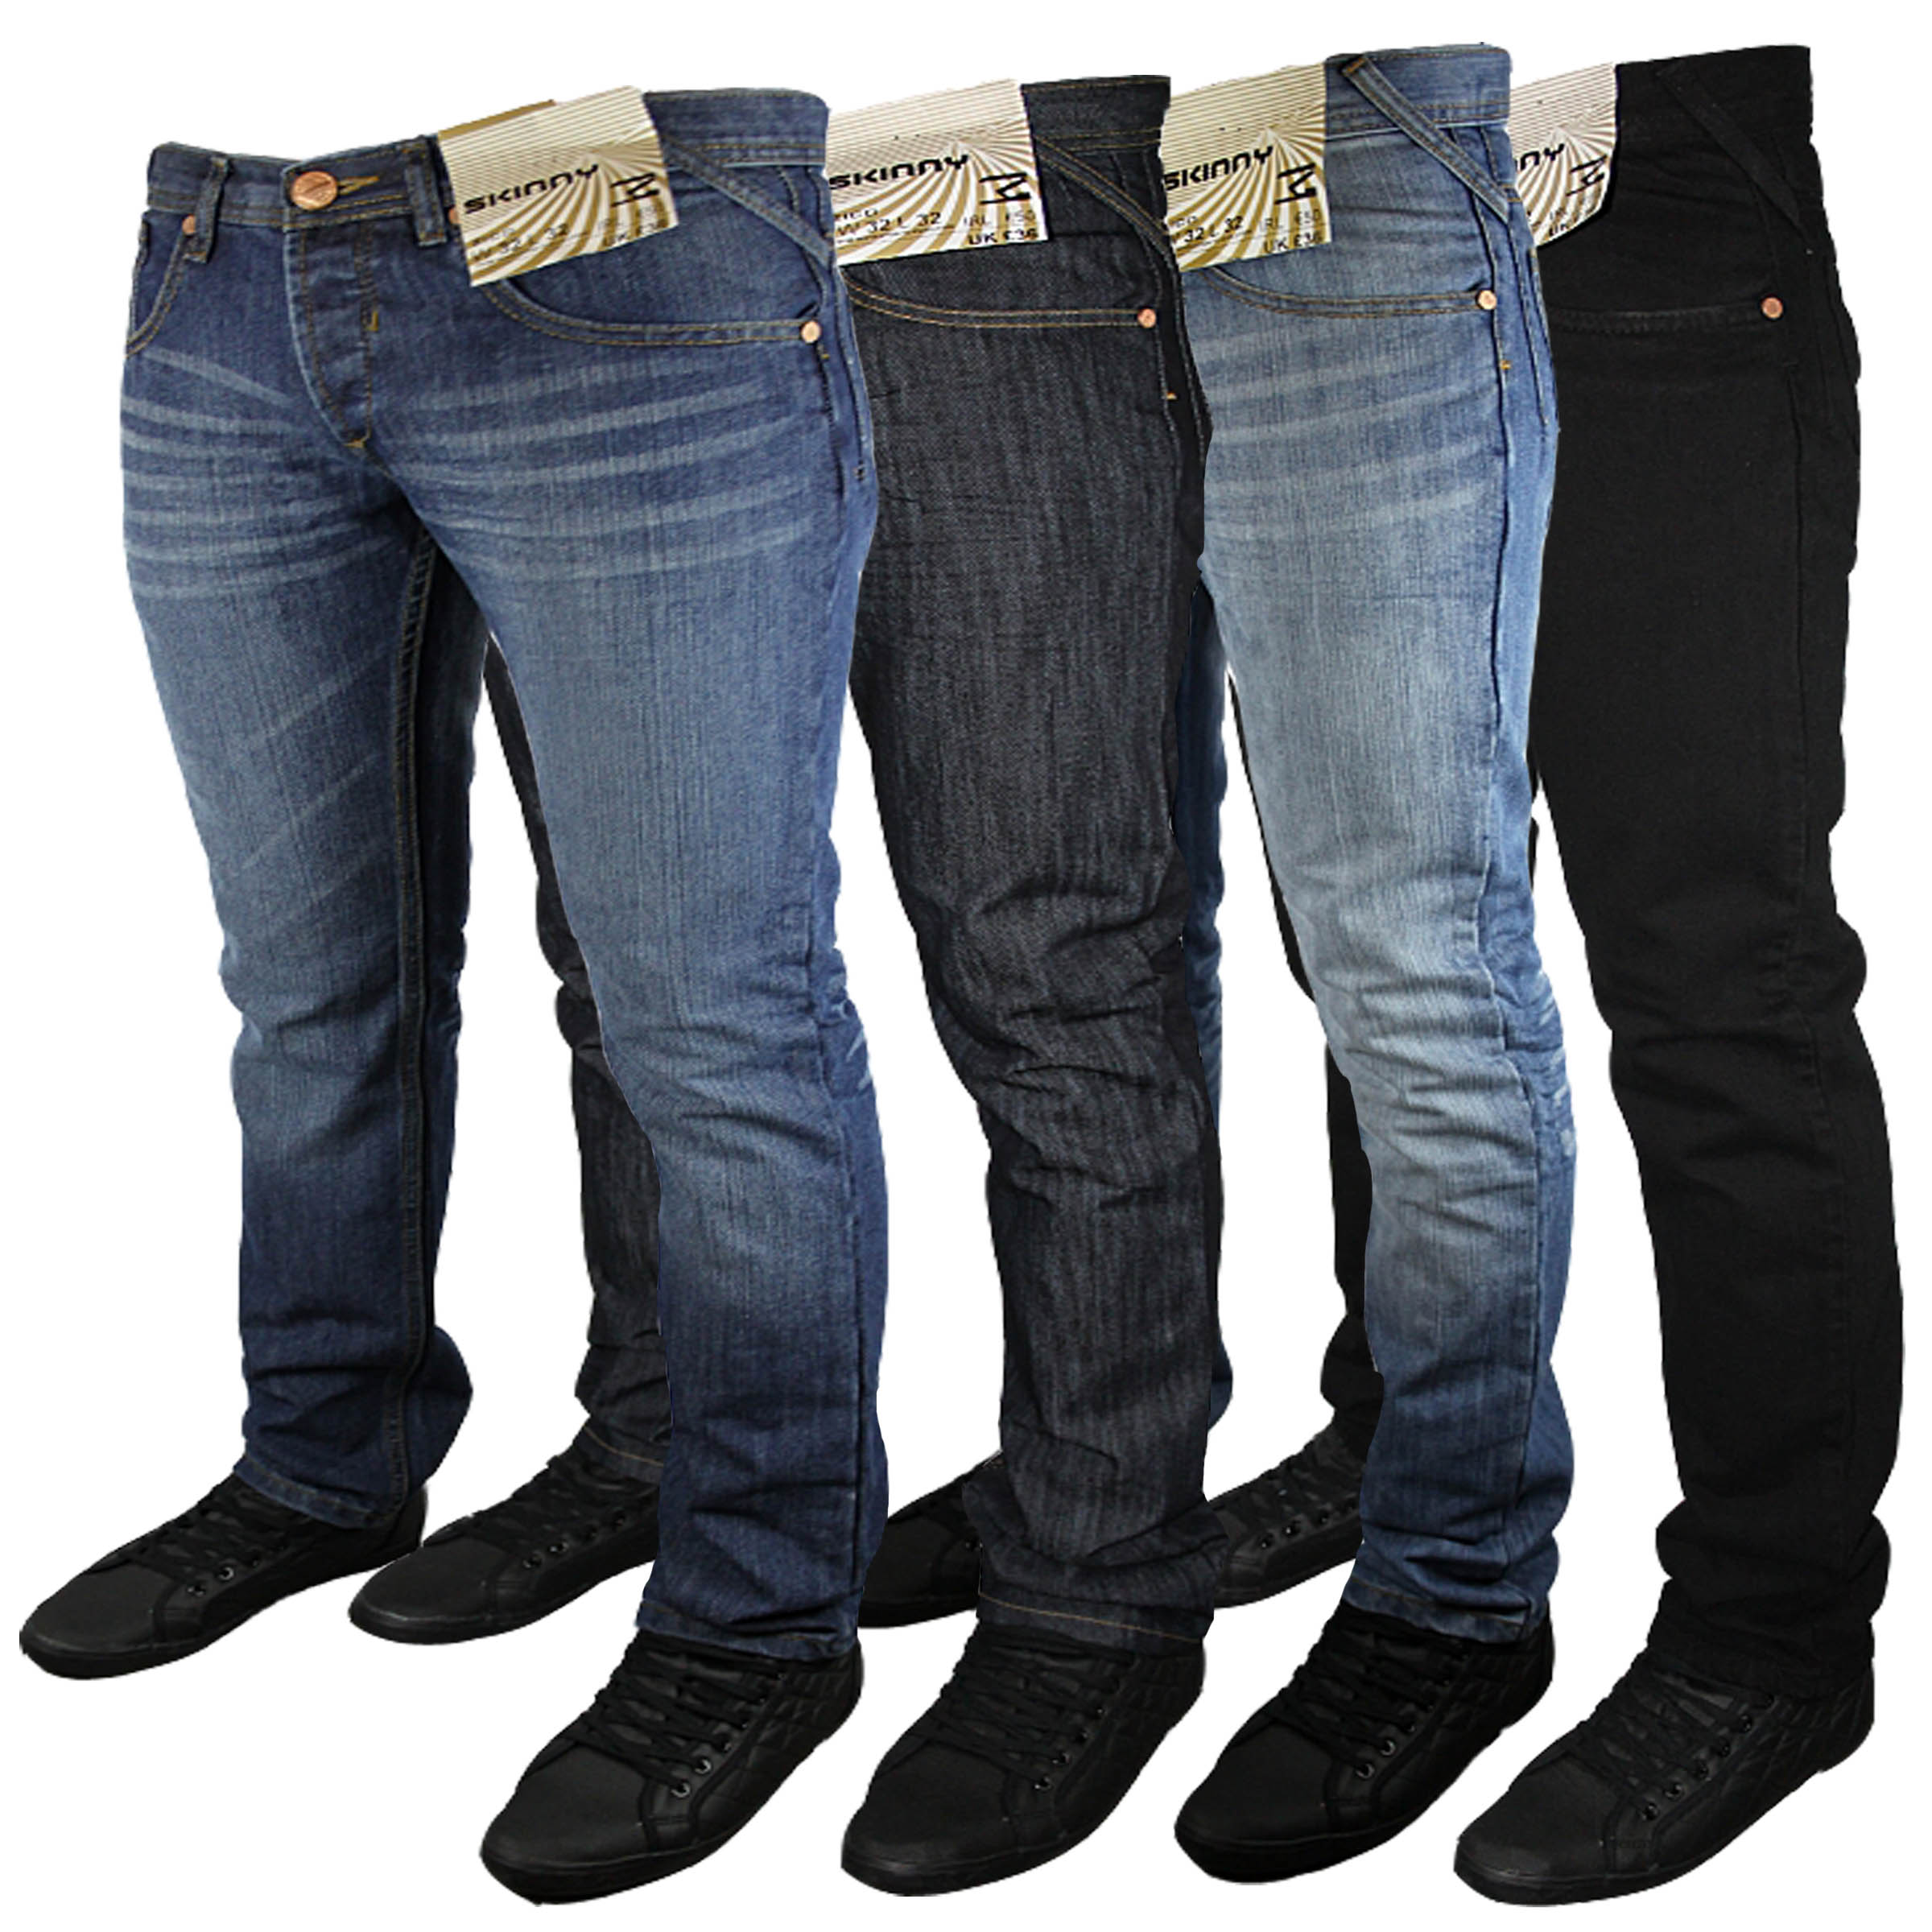 Mens Zico Skinny Basic Designer Branded Slim Fit Jeans All